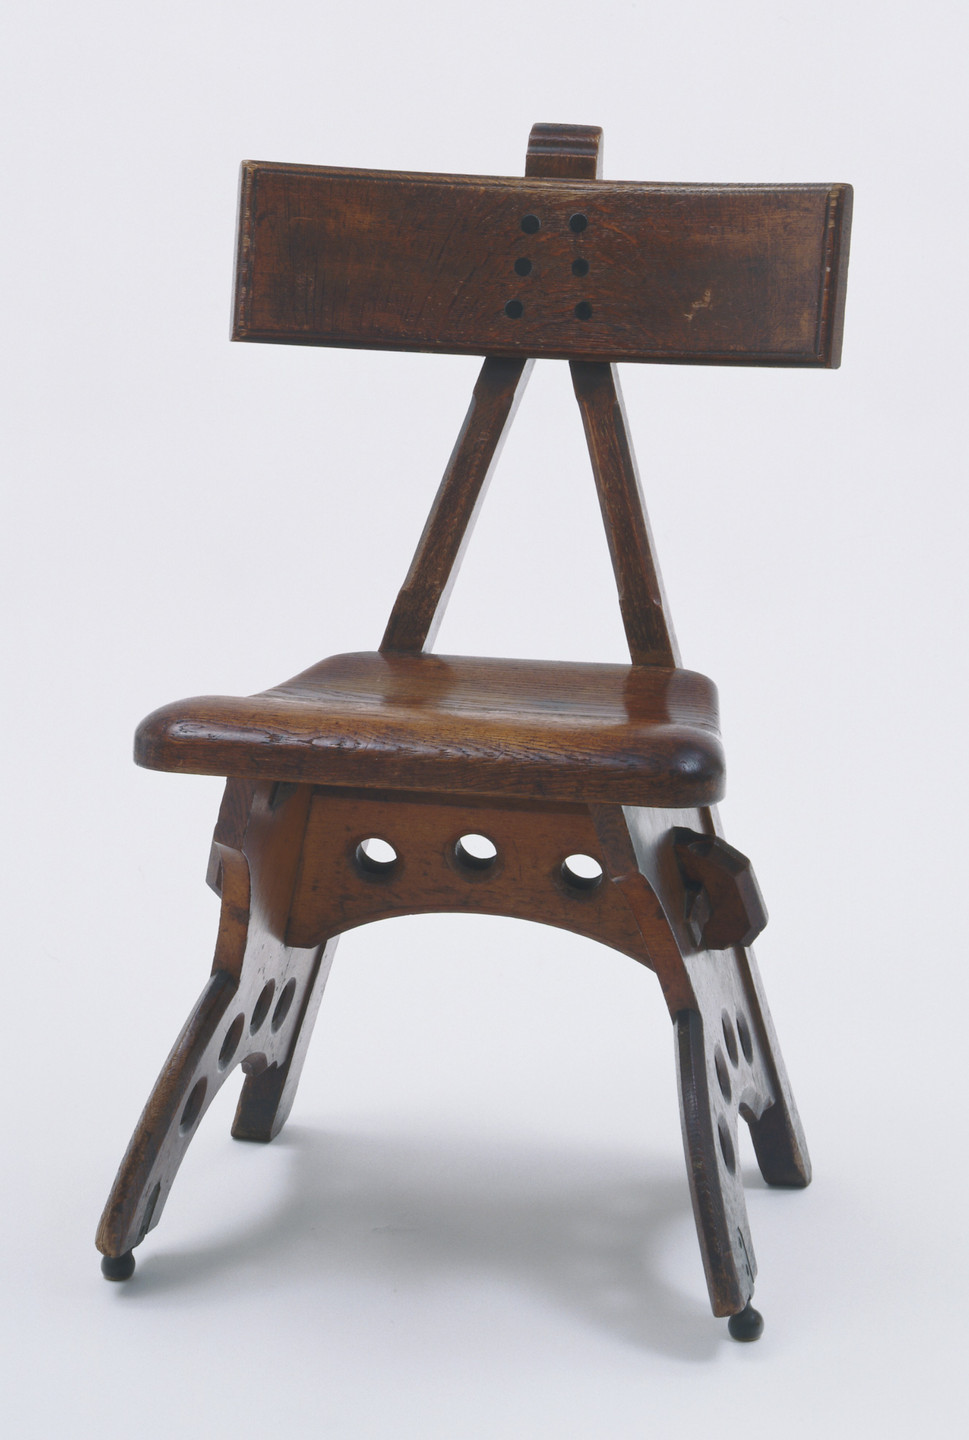 Edward Welby Pugin. Chair. 1870